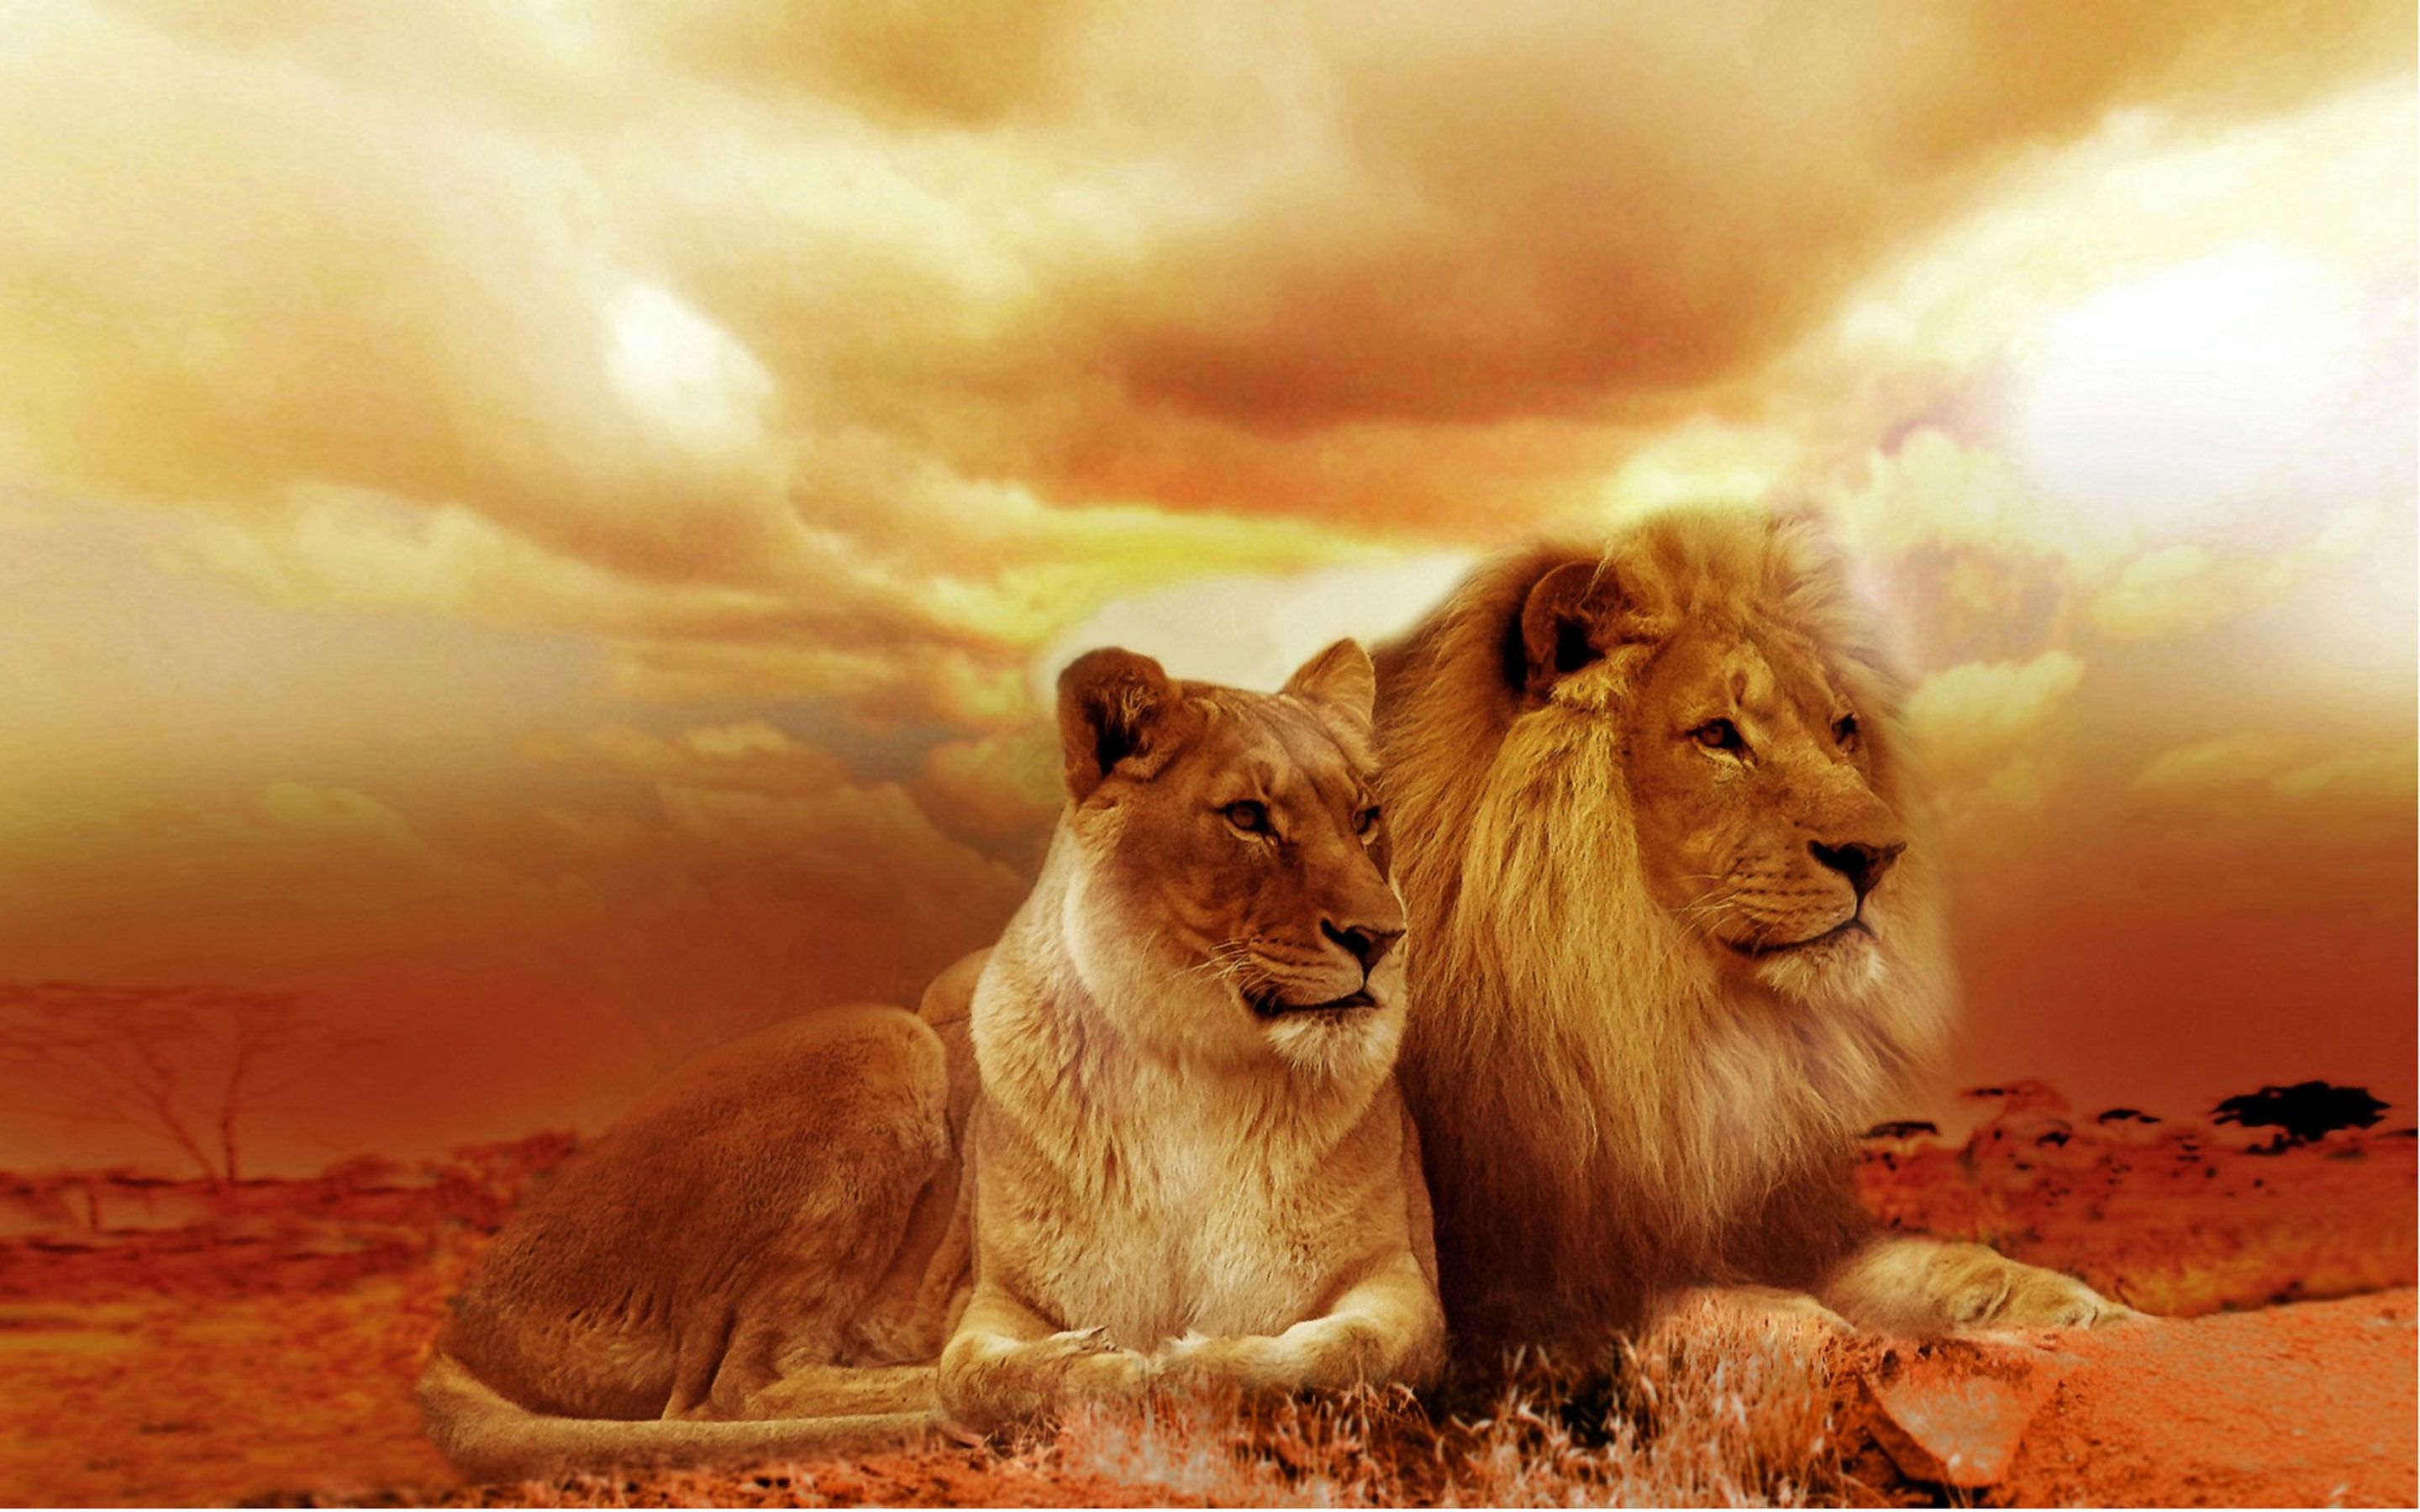 Beautiful Lion , HD Wallpaper & Backgrounds